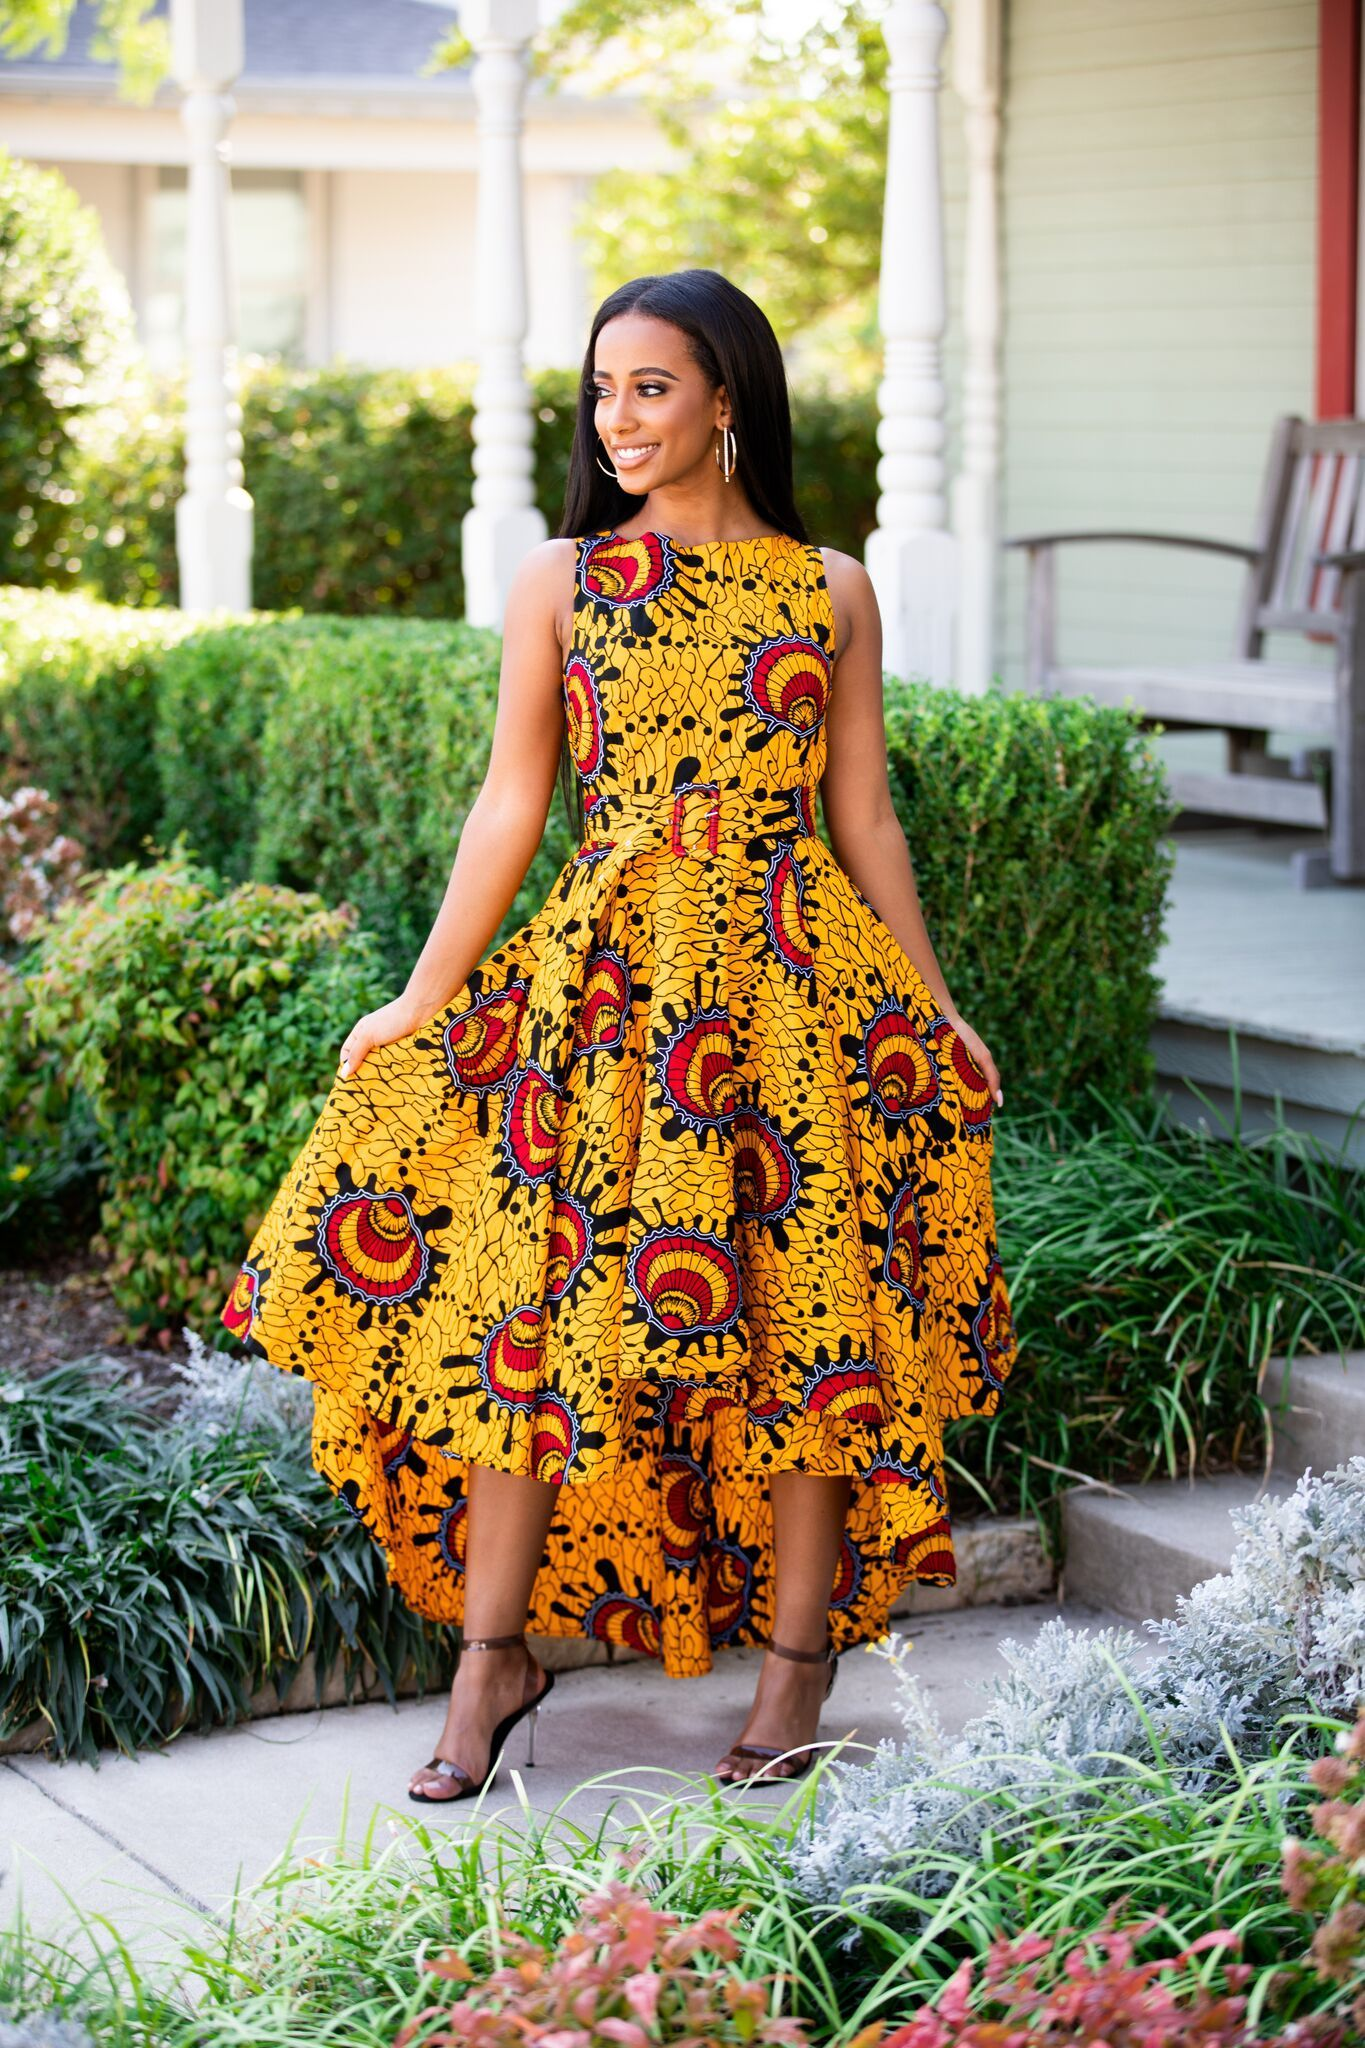 Stay stylish in the our Sade African print mini dress with puff sleeves in the yellow navy multipattern. The Sade dress is a statement piece. Rock this piece with your favorite wedges or sandals for the perfect summer look. Description: Inserted pockets sleeveless 100% Cotton Ankara Ships Fast Care: Hand wash separately. Use mild detergent. Do not bleach. Hang to dry. Iron inside out.